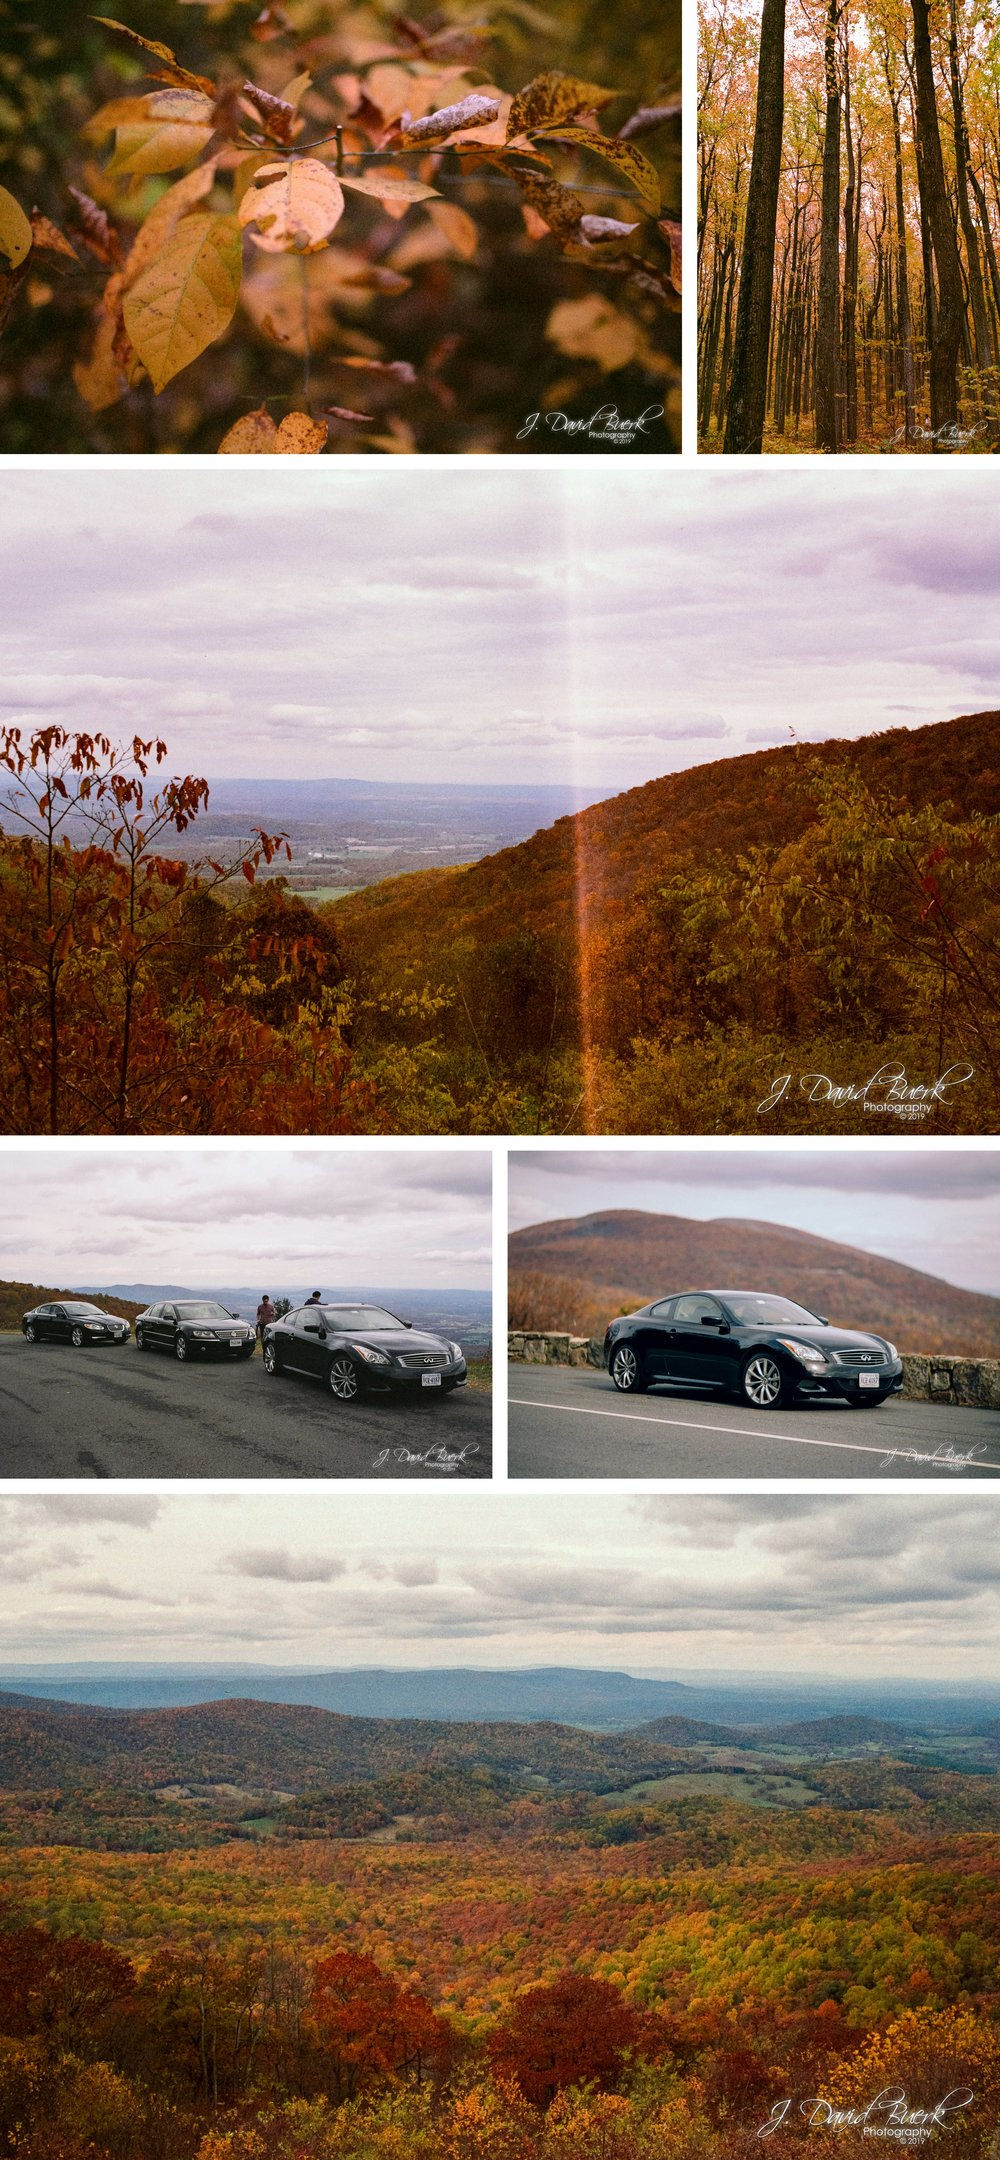 20151025 - Shenandoah National Park Skyline Drive - Film 2.jpg